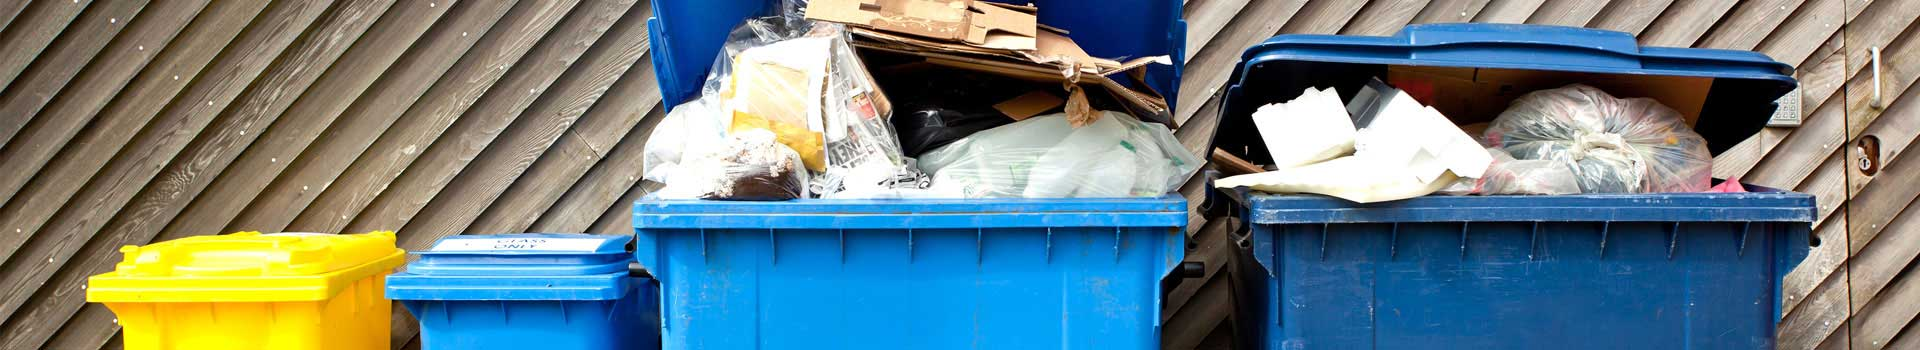 Commercial Waste Collection & Disposal